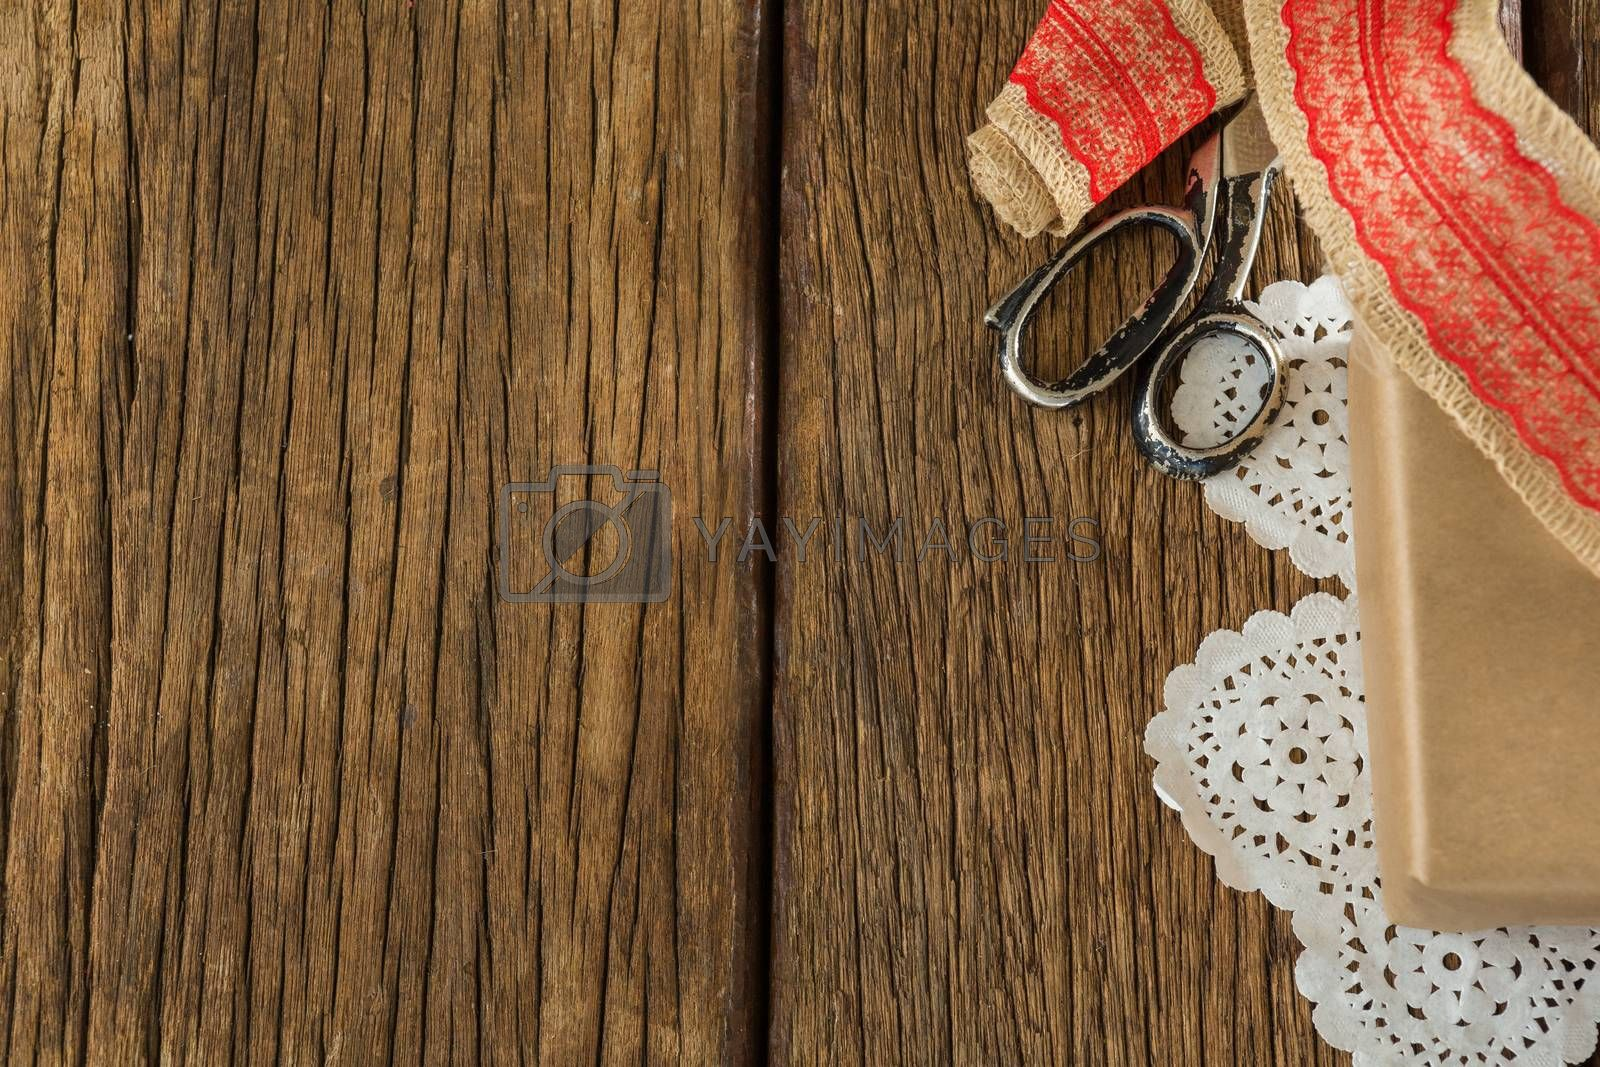 Wrapped gift, ribbon and scissors on wooden plank by Wavebreakmedia